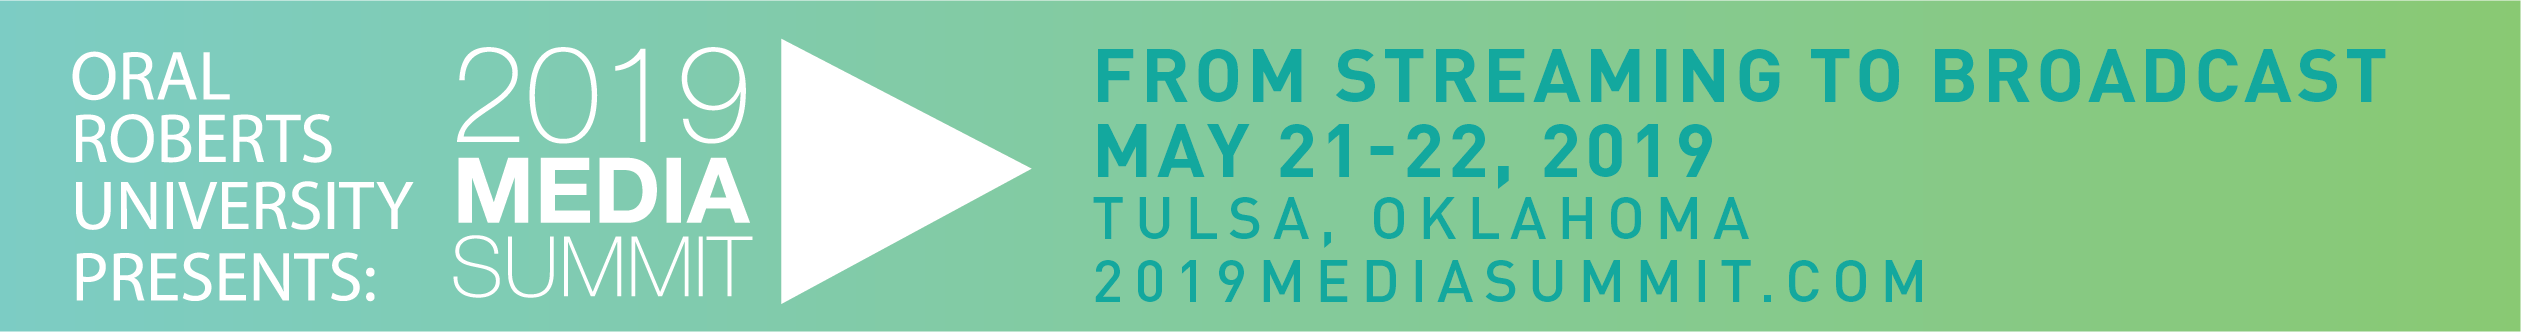 Oral Roberts University Presents: 2019 Media Summit, Tulsa OK - www.2019MediaSummit.com